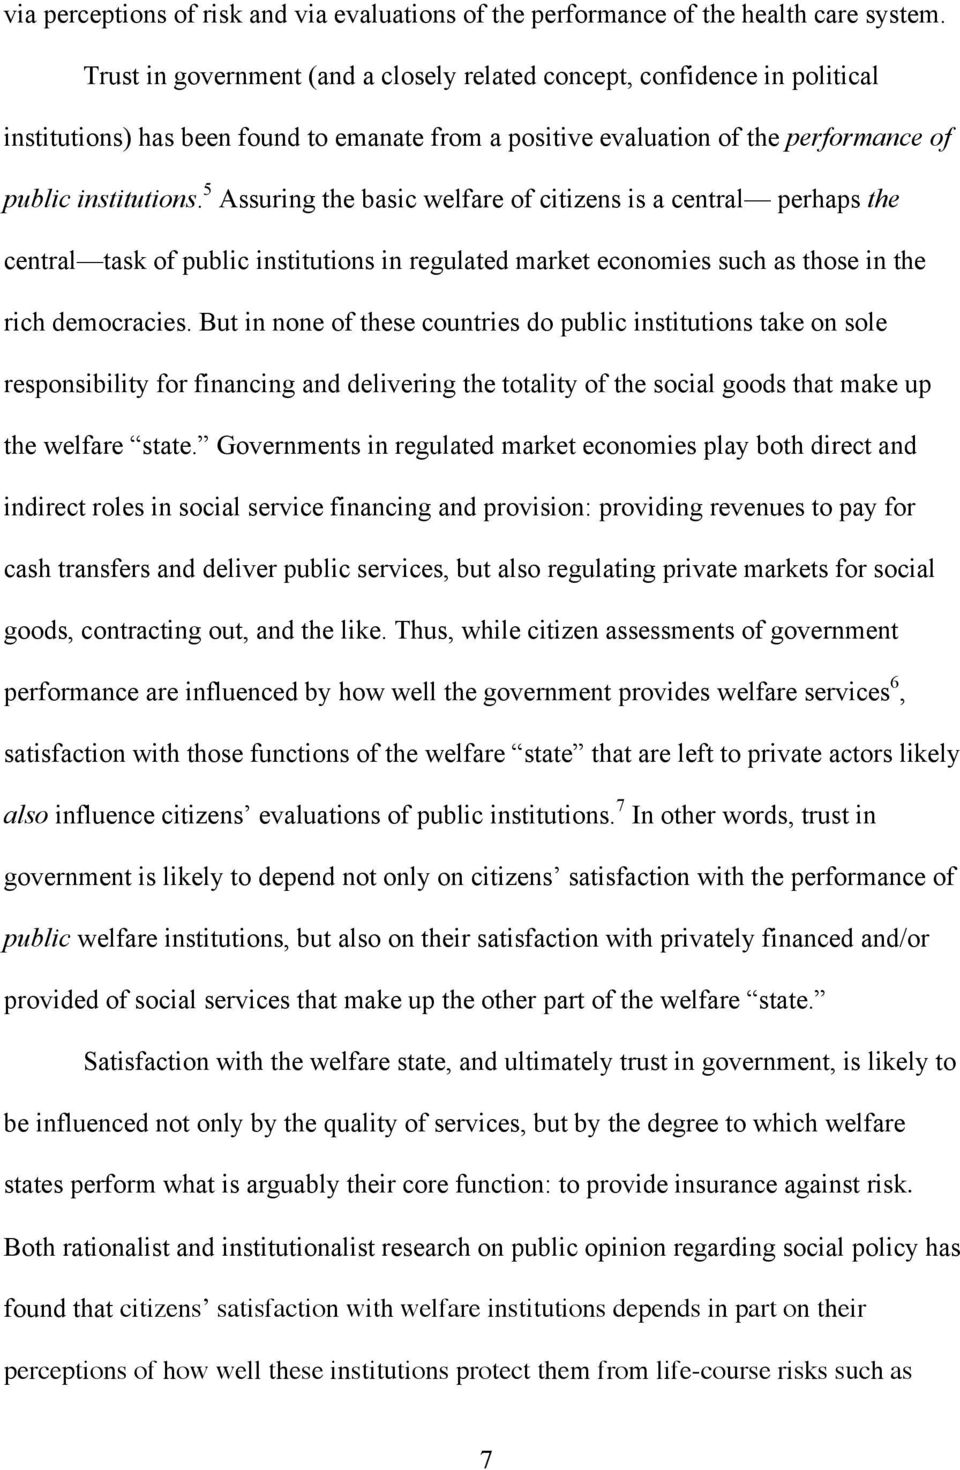 5 Assuring the basic welfare of citizens is a central perhaps the central task of public institutions in regulated market economies such as those in the rich democracies.